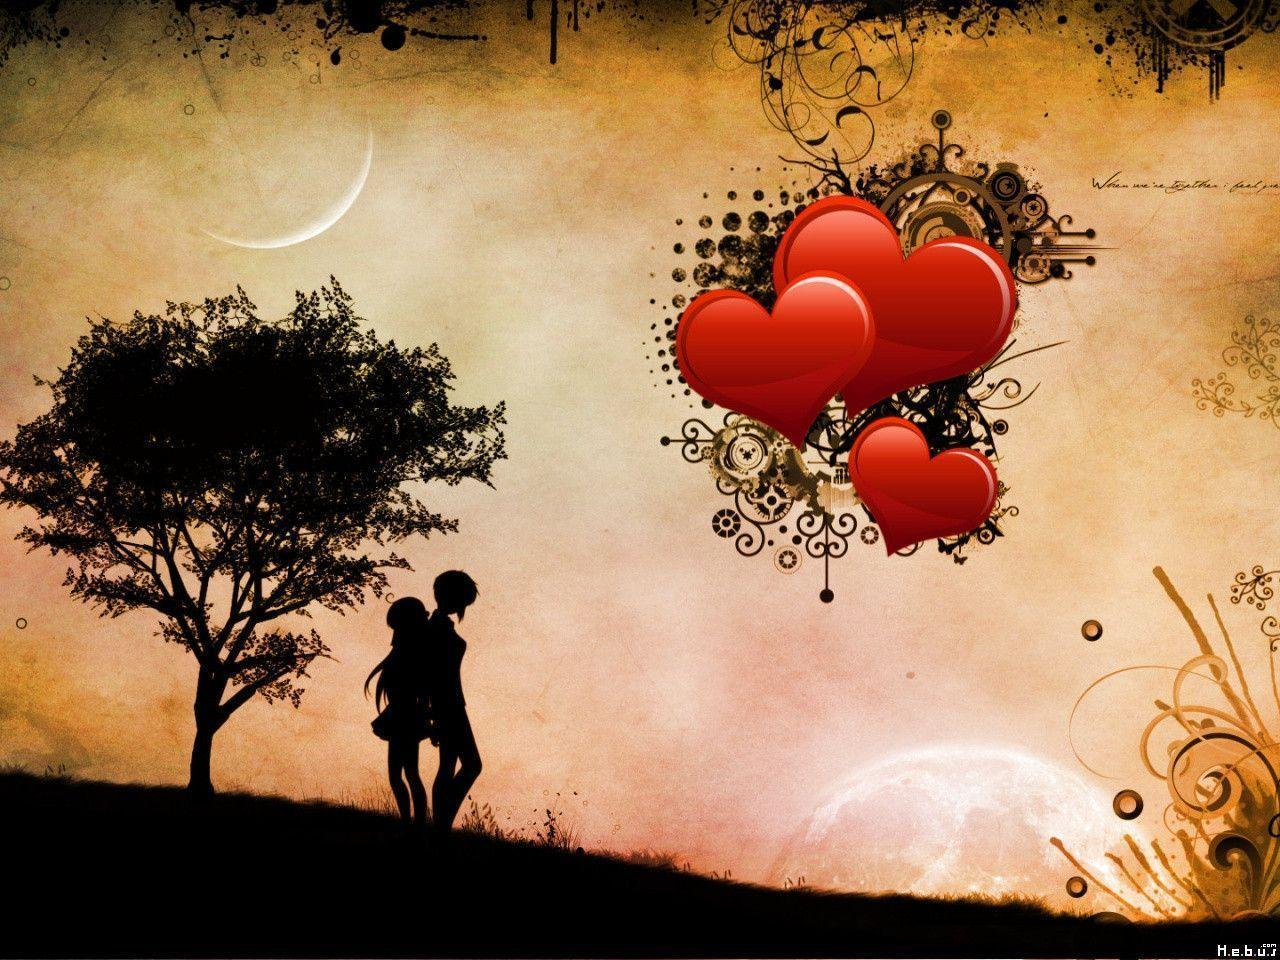 3D Love HD Wallpaper Free Download | Hd Wallpapers 2u Free Download